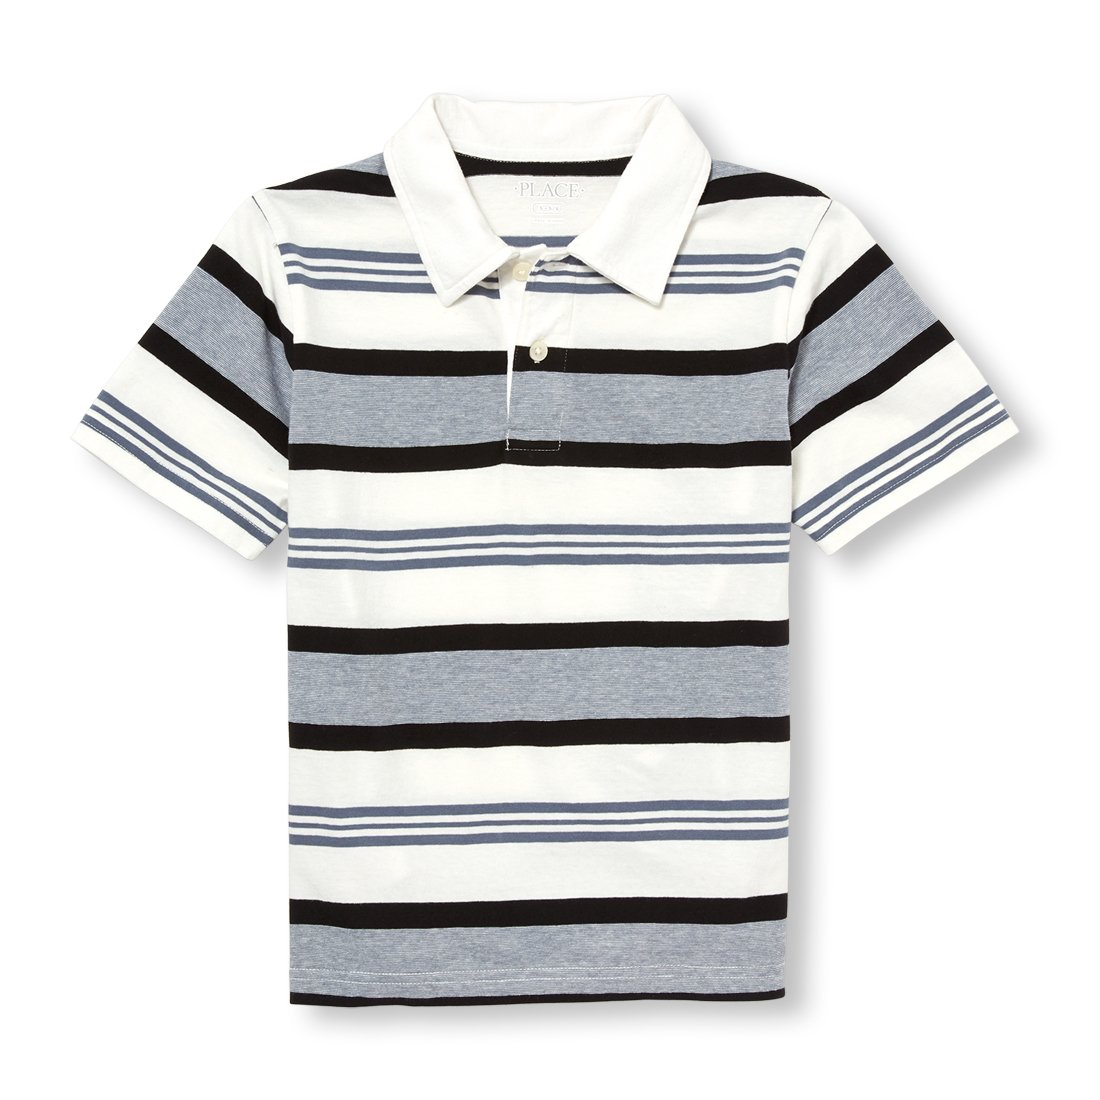 The Children's Place Boys' Three Color Striped Polo The Children's Place